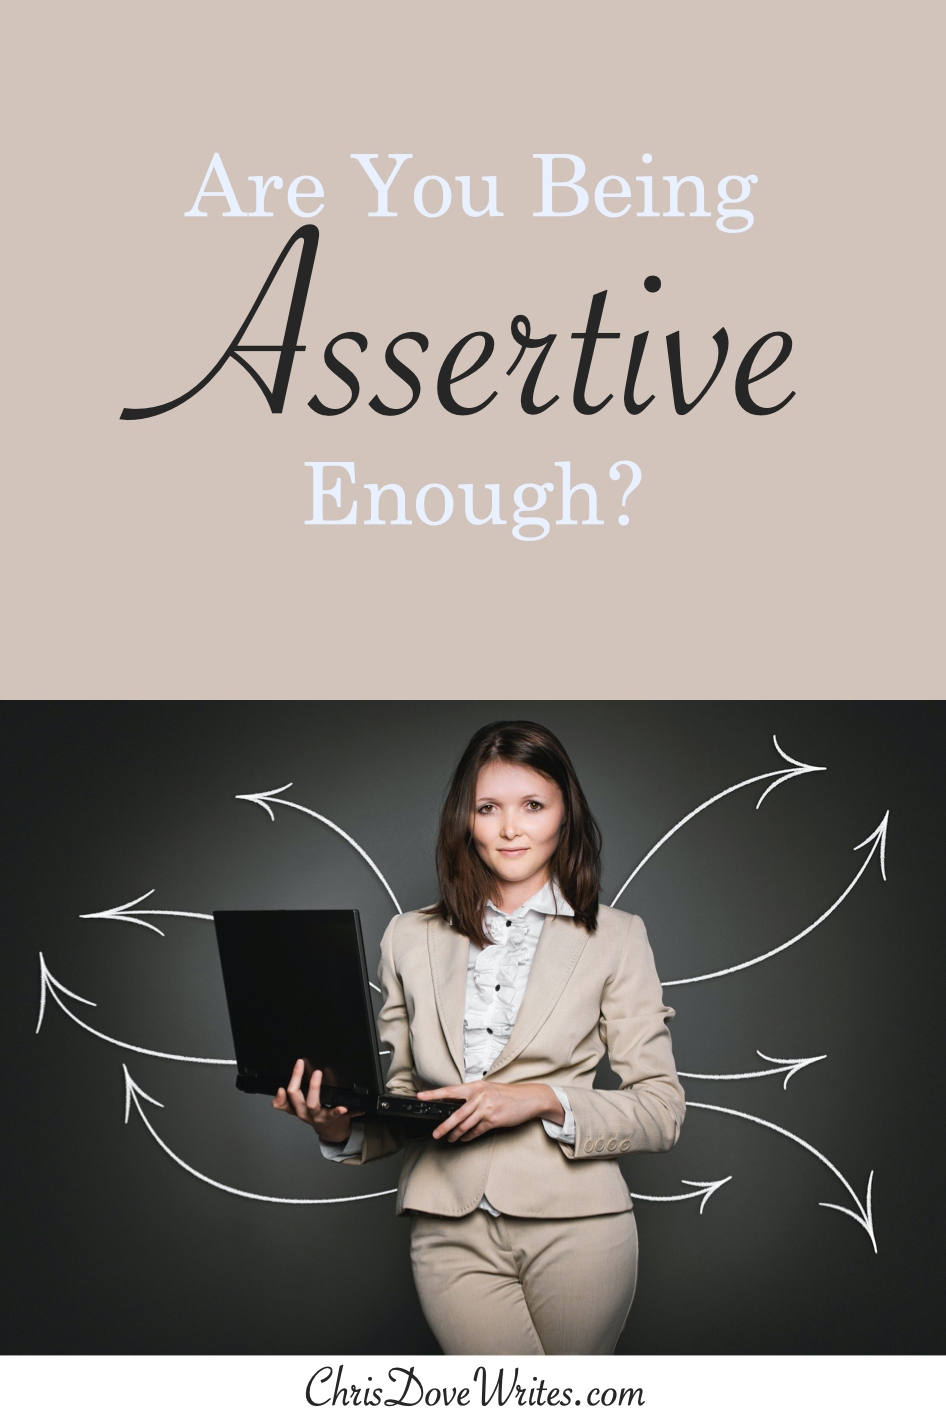 Are you being assertive enough?